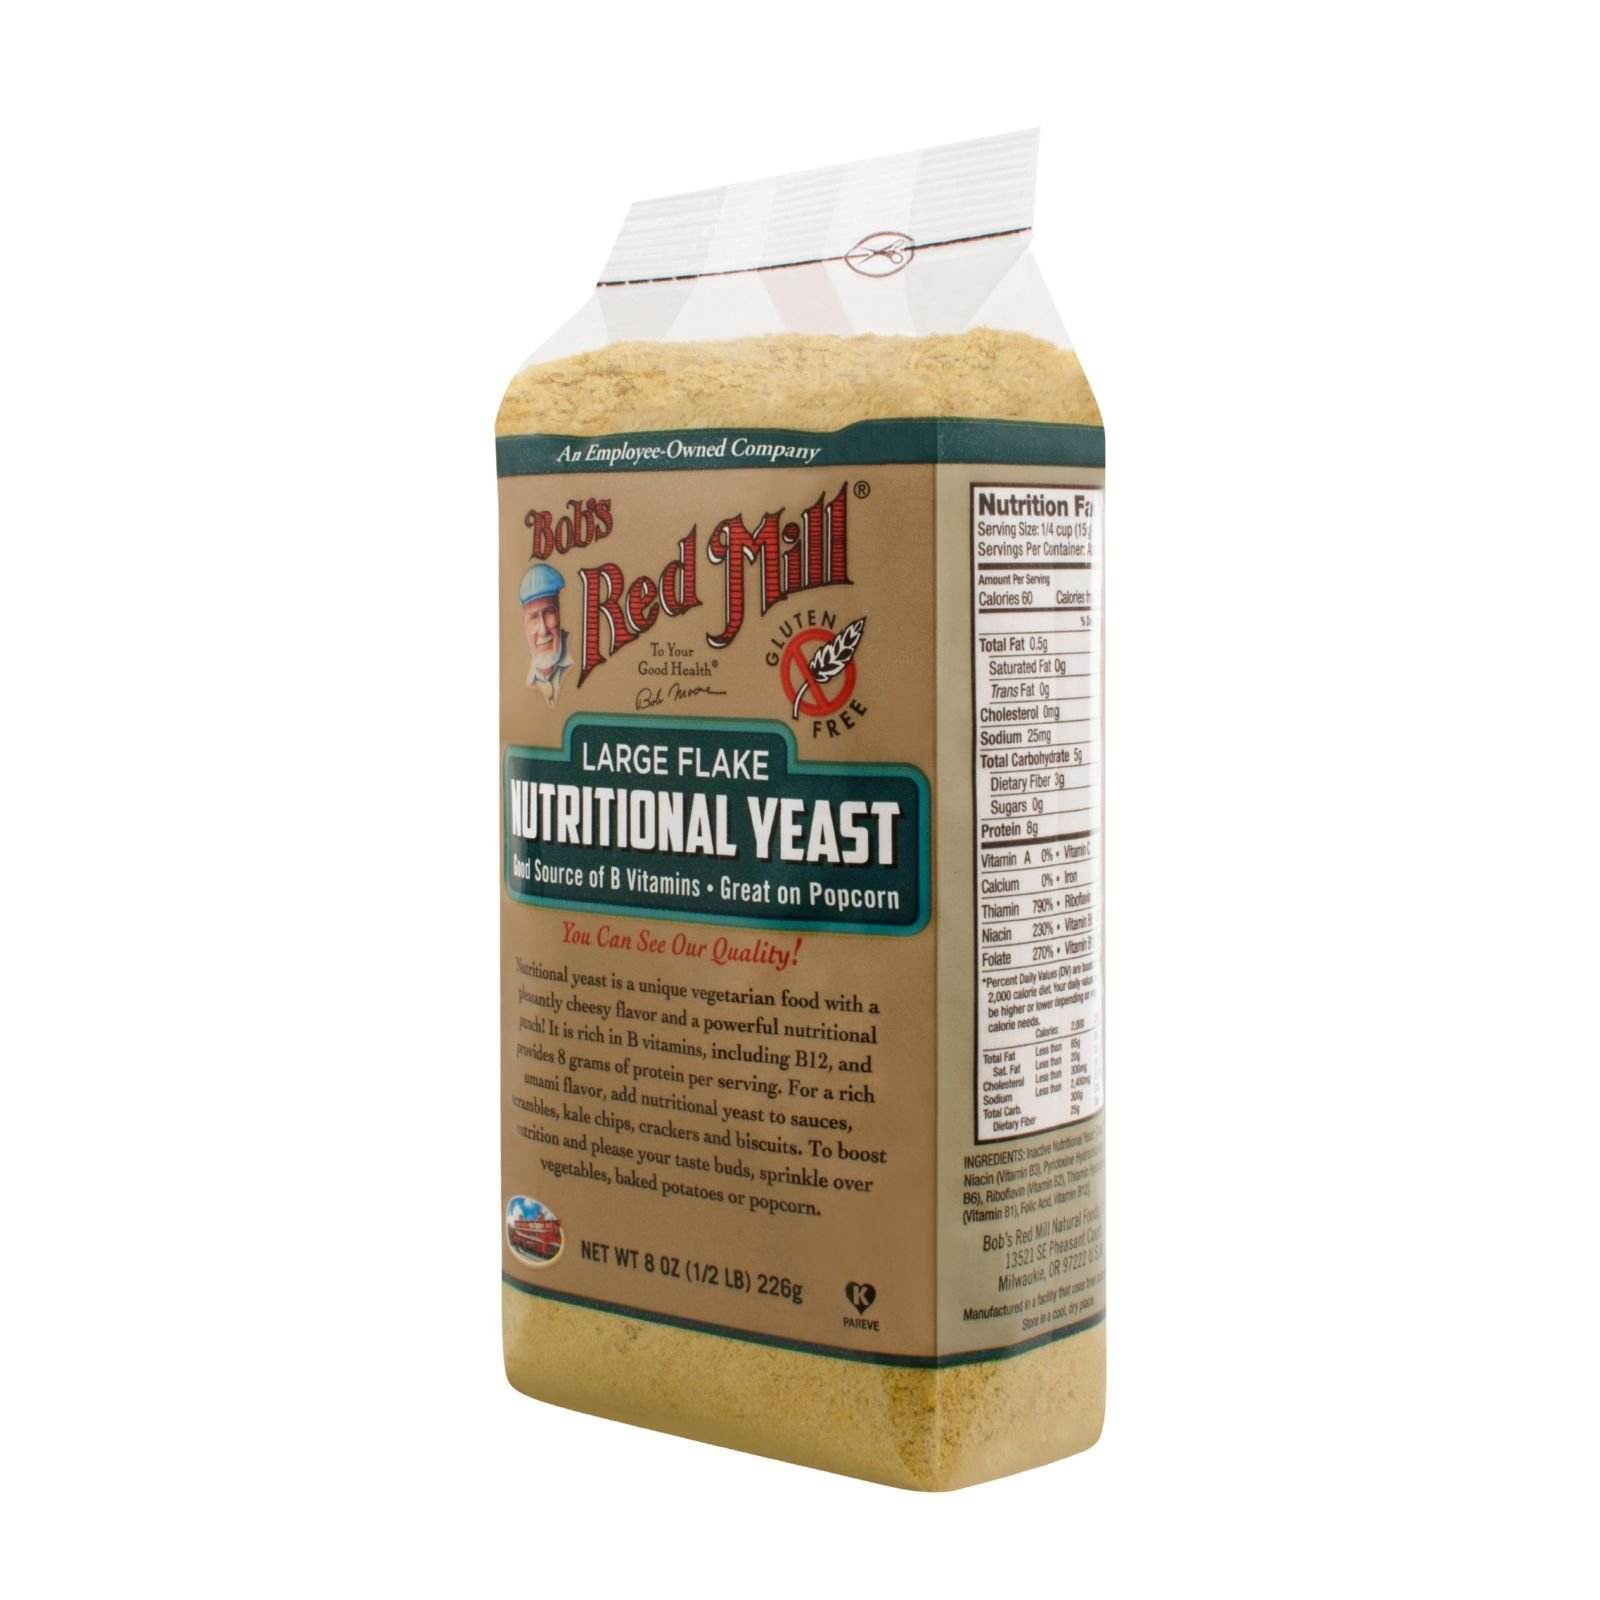 Bobs Red Mill Gluten Free Large Flake Nutritional Yeast - 8 oz - Case of 4